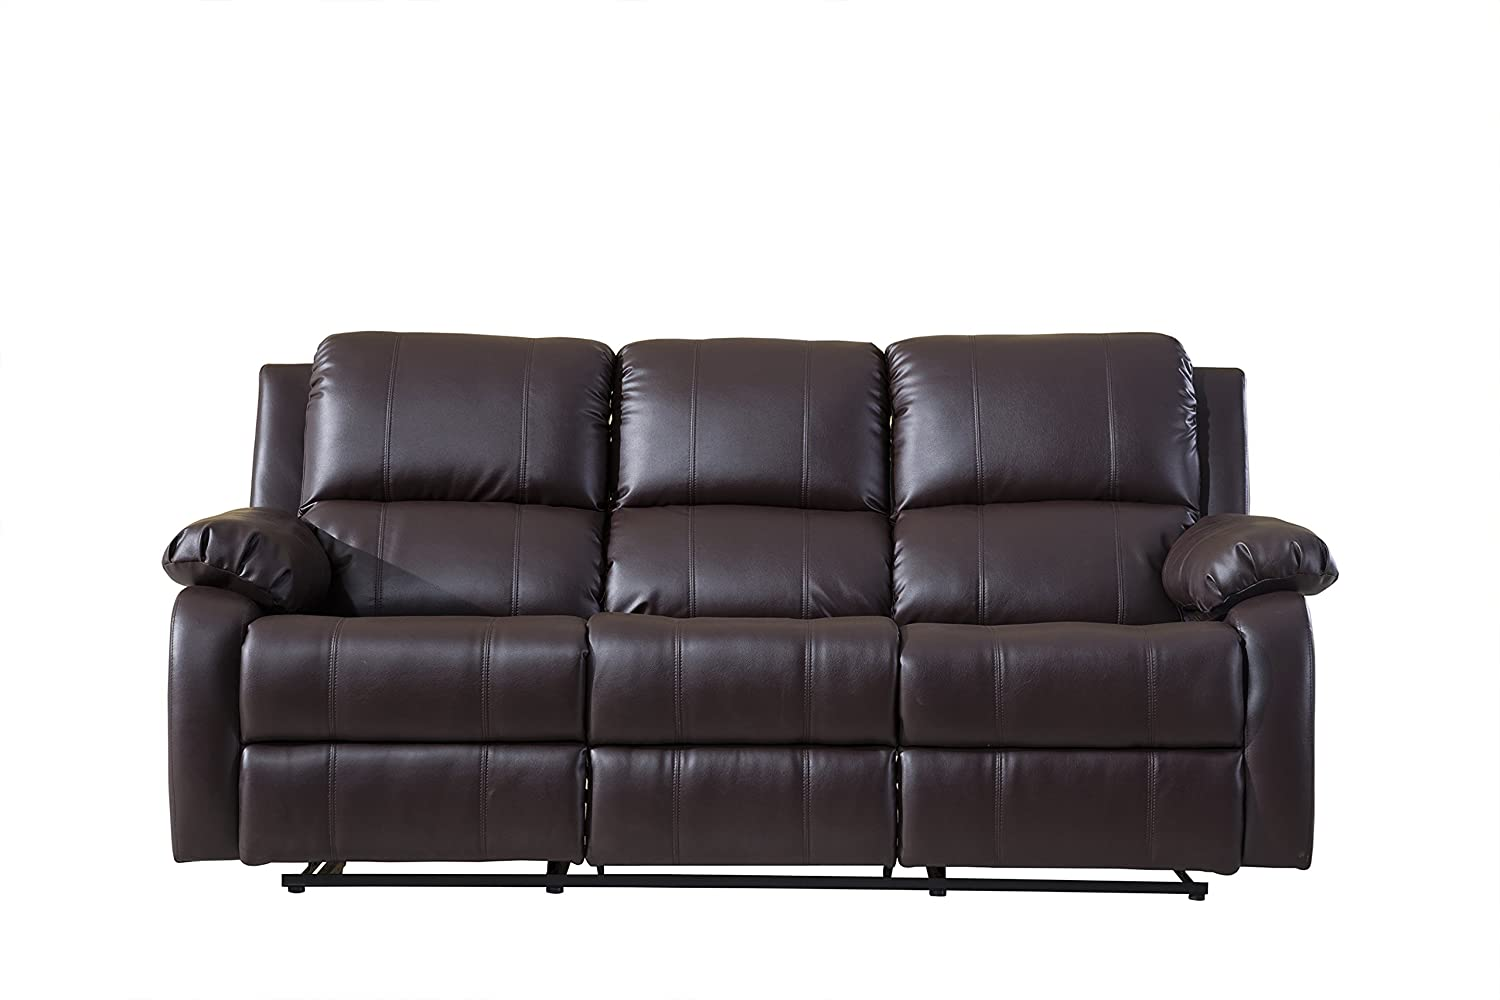 Amazon Recliner Sofa Ashley Furniture Signature Design Damacio Manual Recliner Sofa 1 Pull